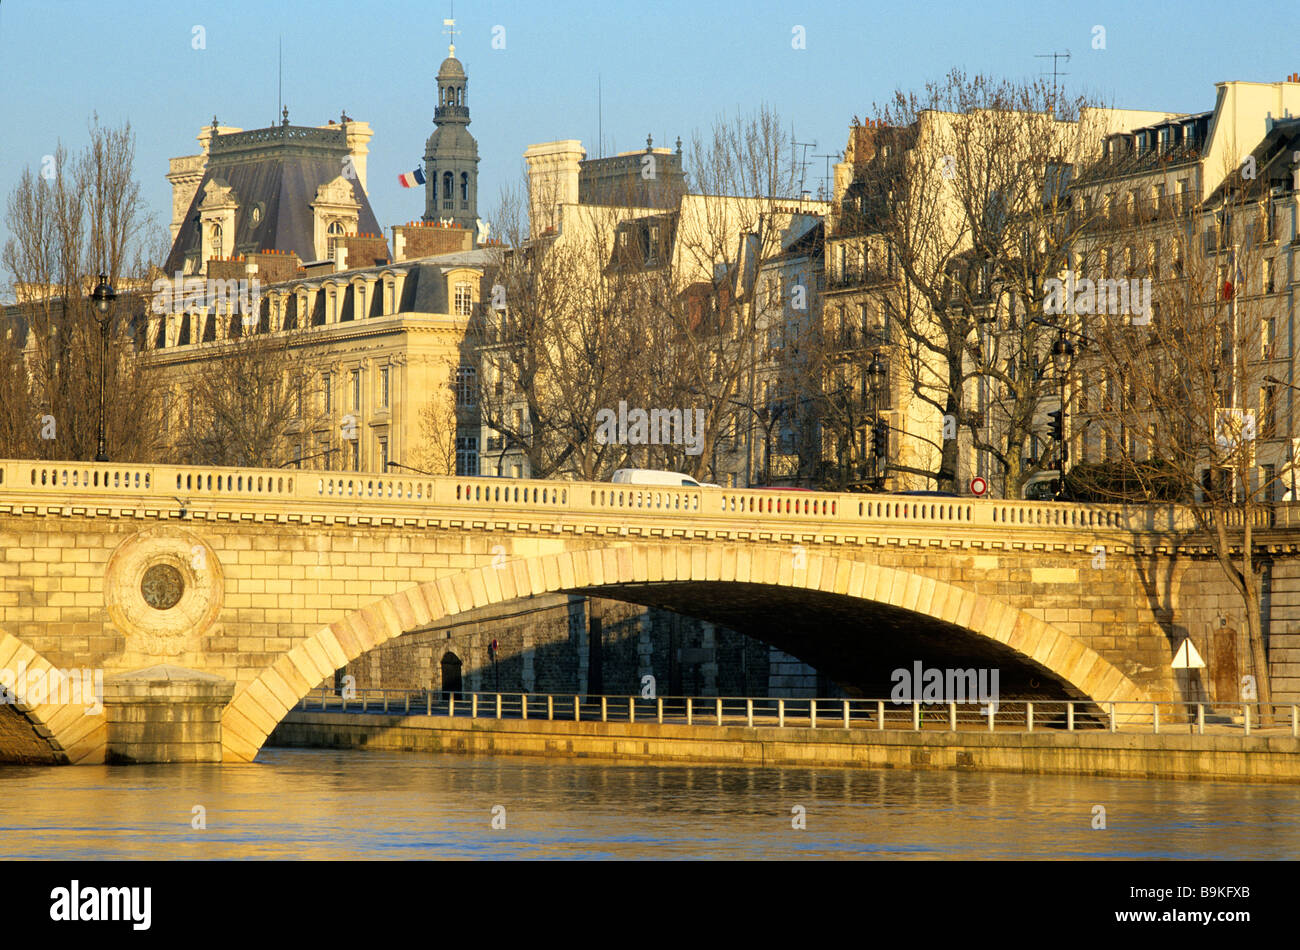 France, Paris, banks of the Seine river classified as World Heritage by UNESCO, Pont Marie linking the ile Saint - Stock Image